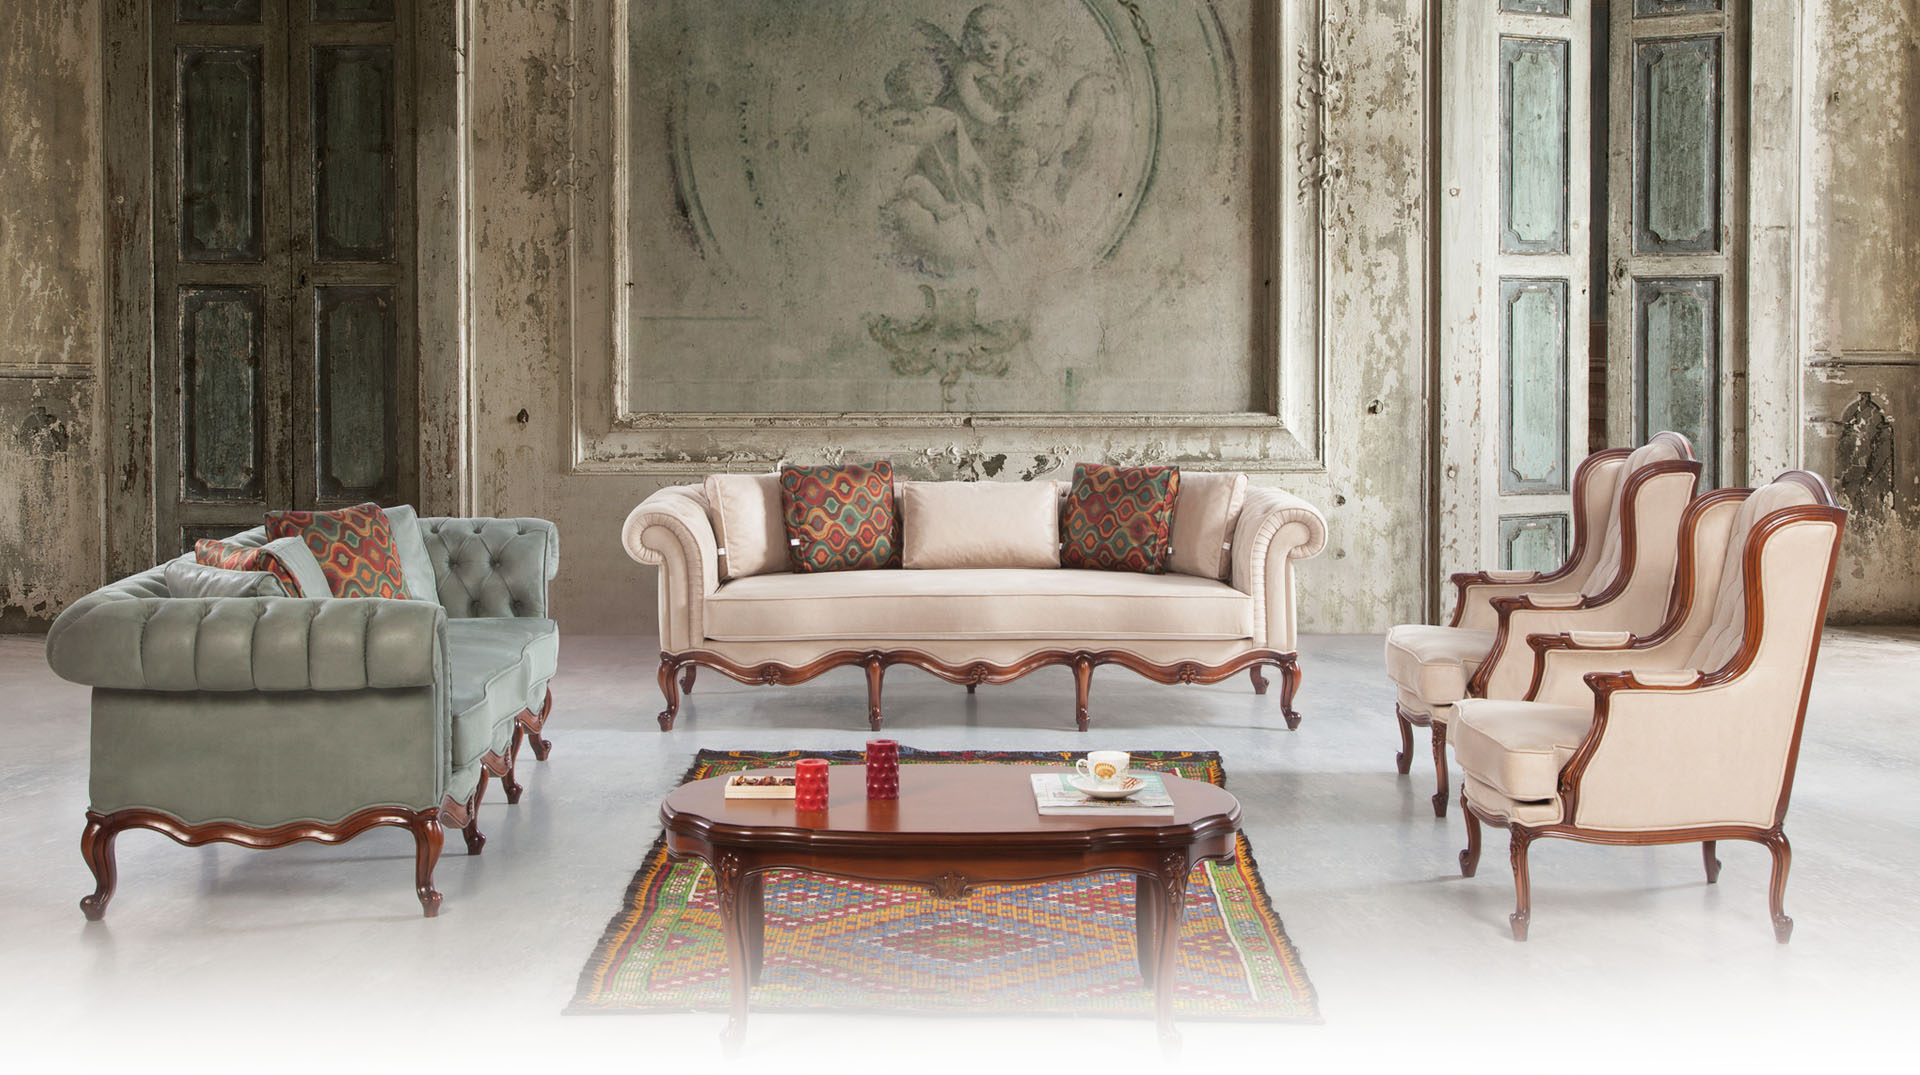 colonial sofa sets india where to donate a sleeper best furniture designers sunnyoverseas designs